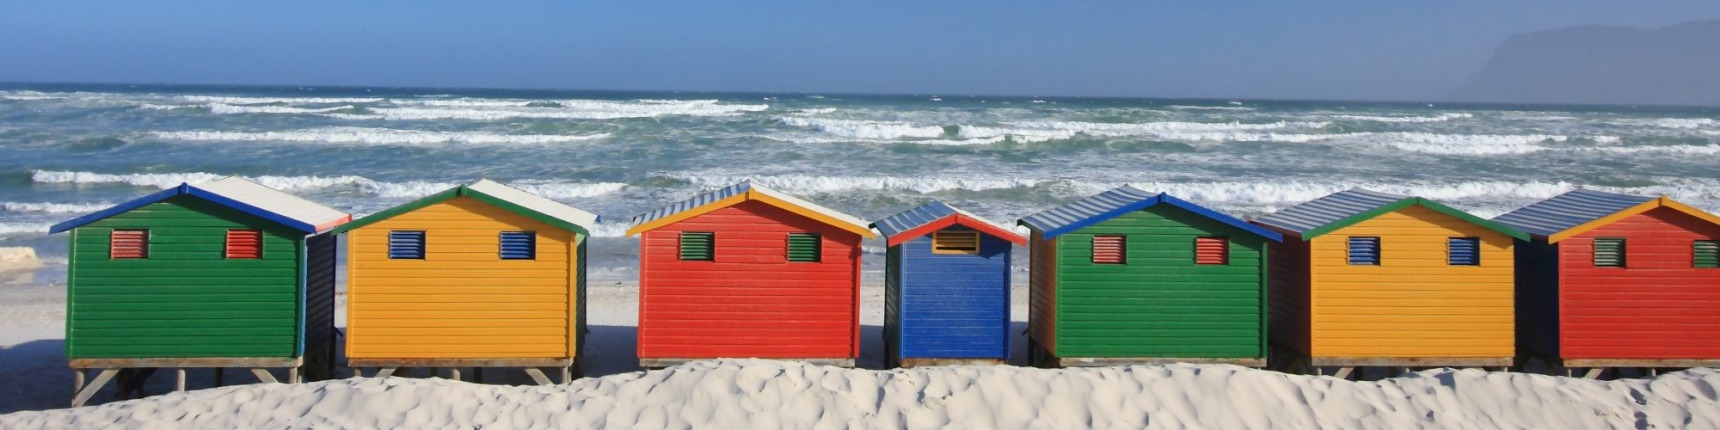 Cape town travel guide plan your holiday in cape town for Cape town travel guide